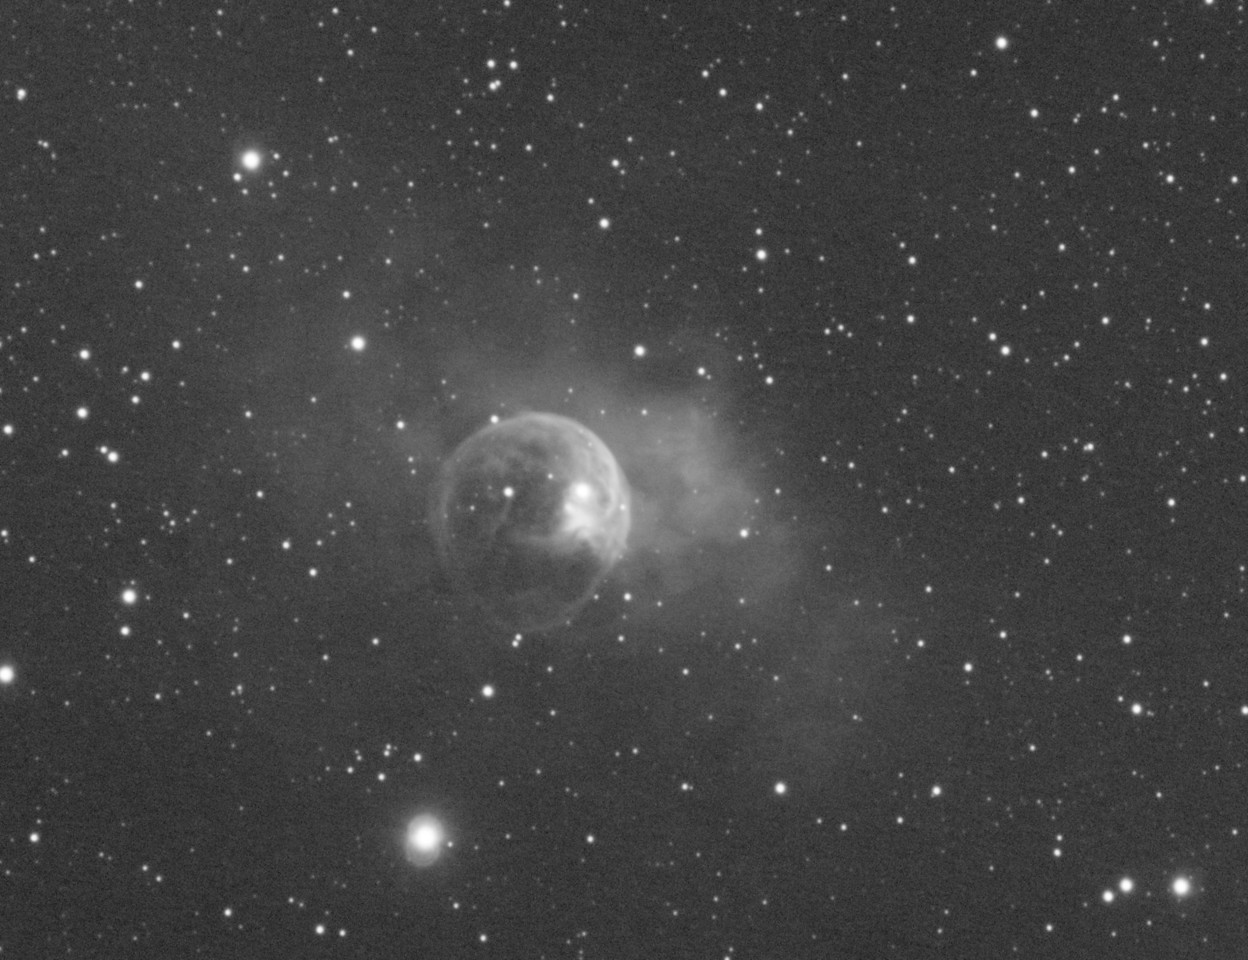 """NGC7635: Bubble Nebula in  Cassiopeia, Astrodon Oiii 5nm filter, 31 x 15 minutes, Unbinned 1x1. F/10, 9/7/2012. Seeing condition was bad.  Celestron 8"""" EdgeHD with Astro-Physics Mach1GTO GEM. Atik 460EX mono. Hutech OAG. Lodestar.   Captured and pre-processed with Nebulosity. Stacked and stretched with PixInsight. PHD settings: RA Aggressiveness: 90, RA Hysteresis: 10, Max Dec Duration: 75, Min Motion: 0.70, Calibration Steps: 125msec, Auto/Resist Switching, Extreme dithering and Settled at < 0.5, 4 sec guiding exposure."""